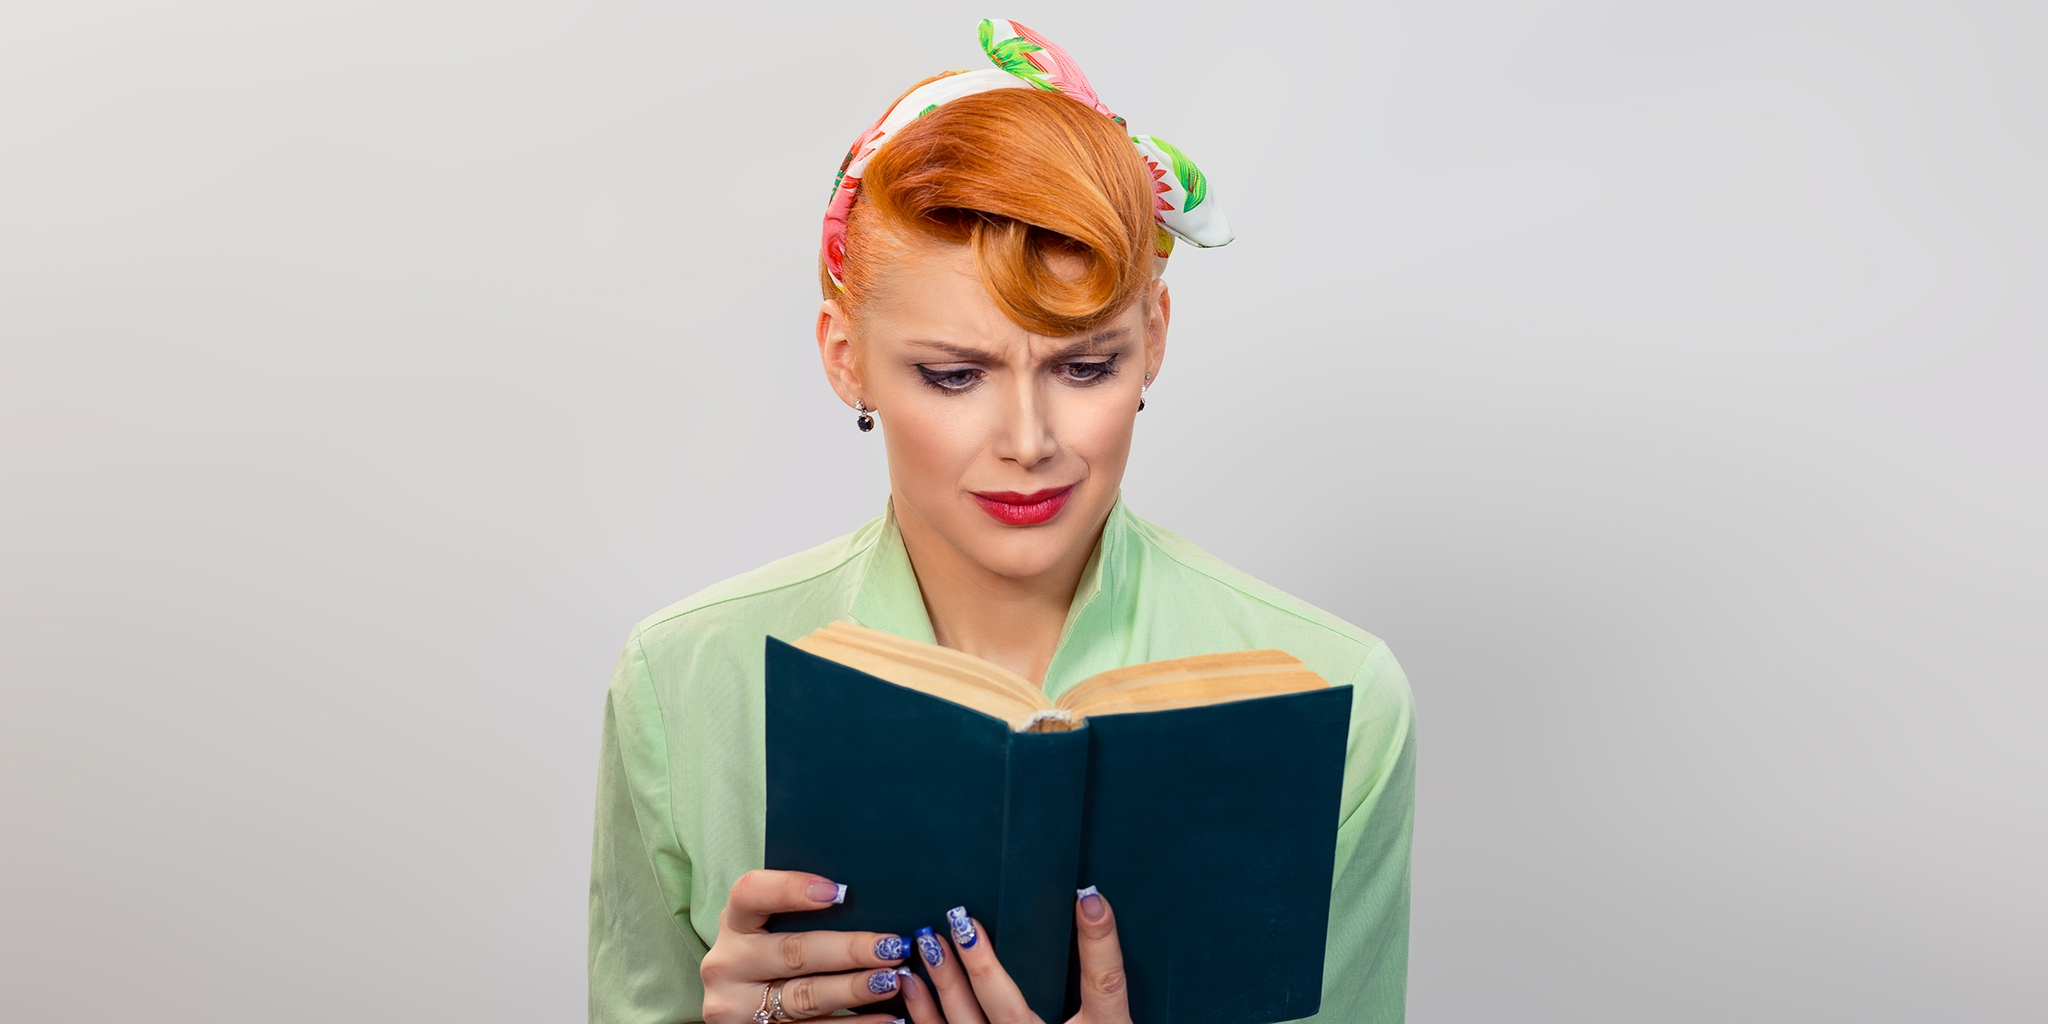 Woman not enjoying what she's reading